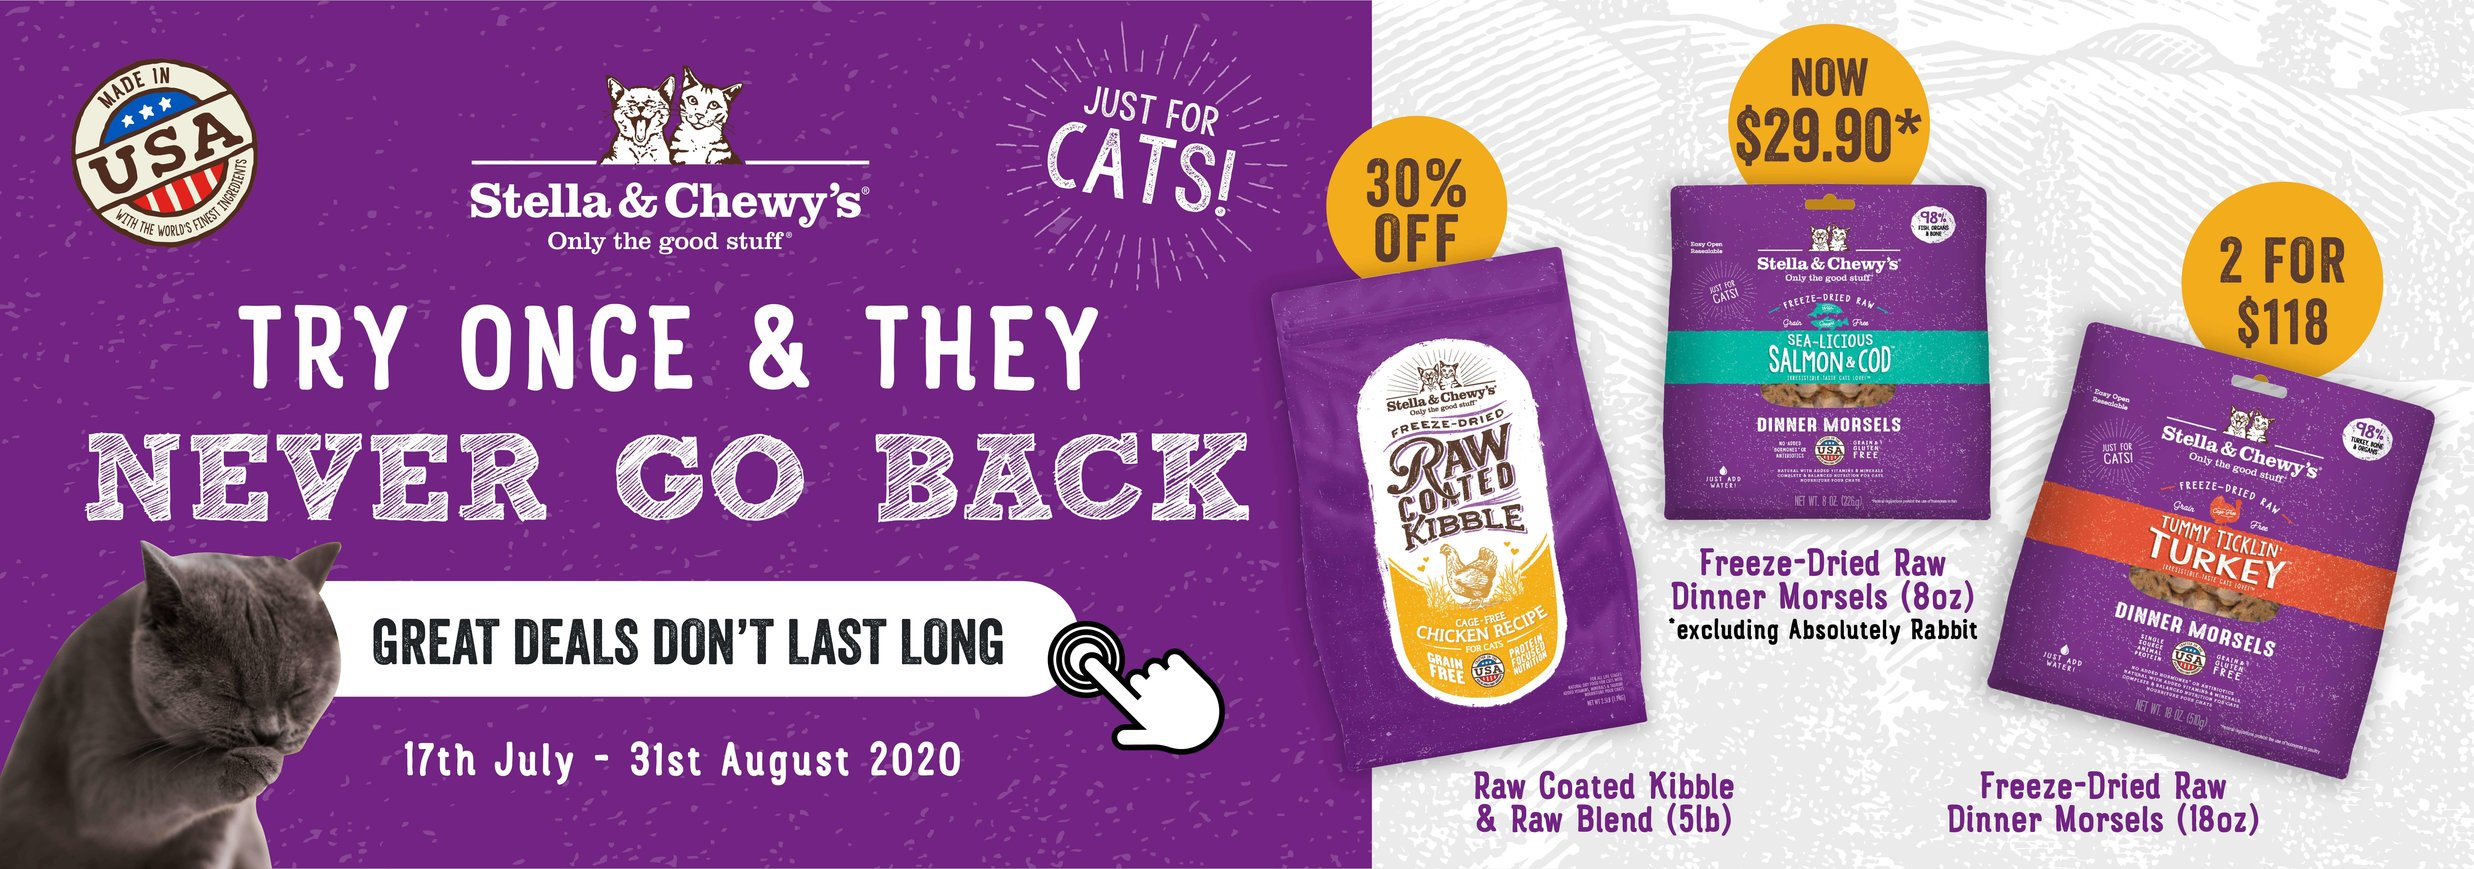 stella & chewy's cat food promotion homepage